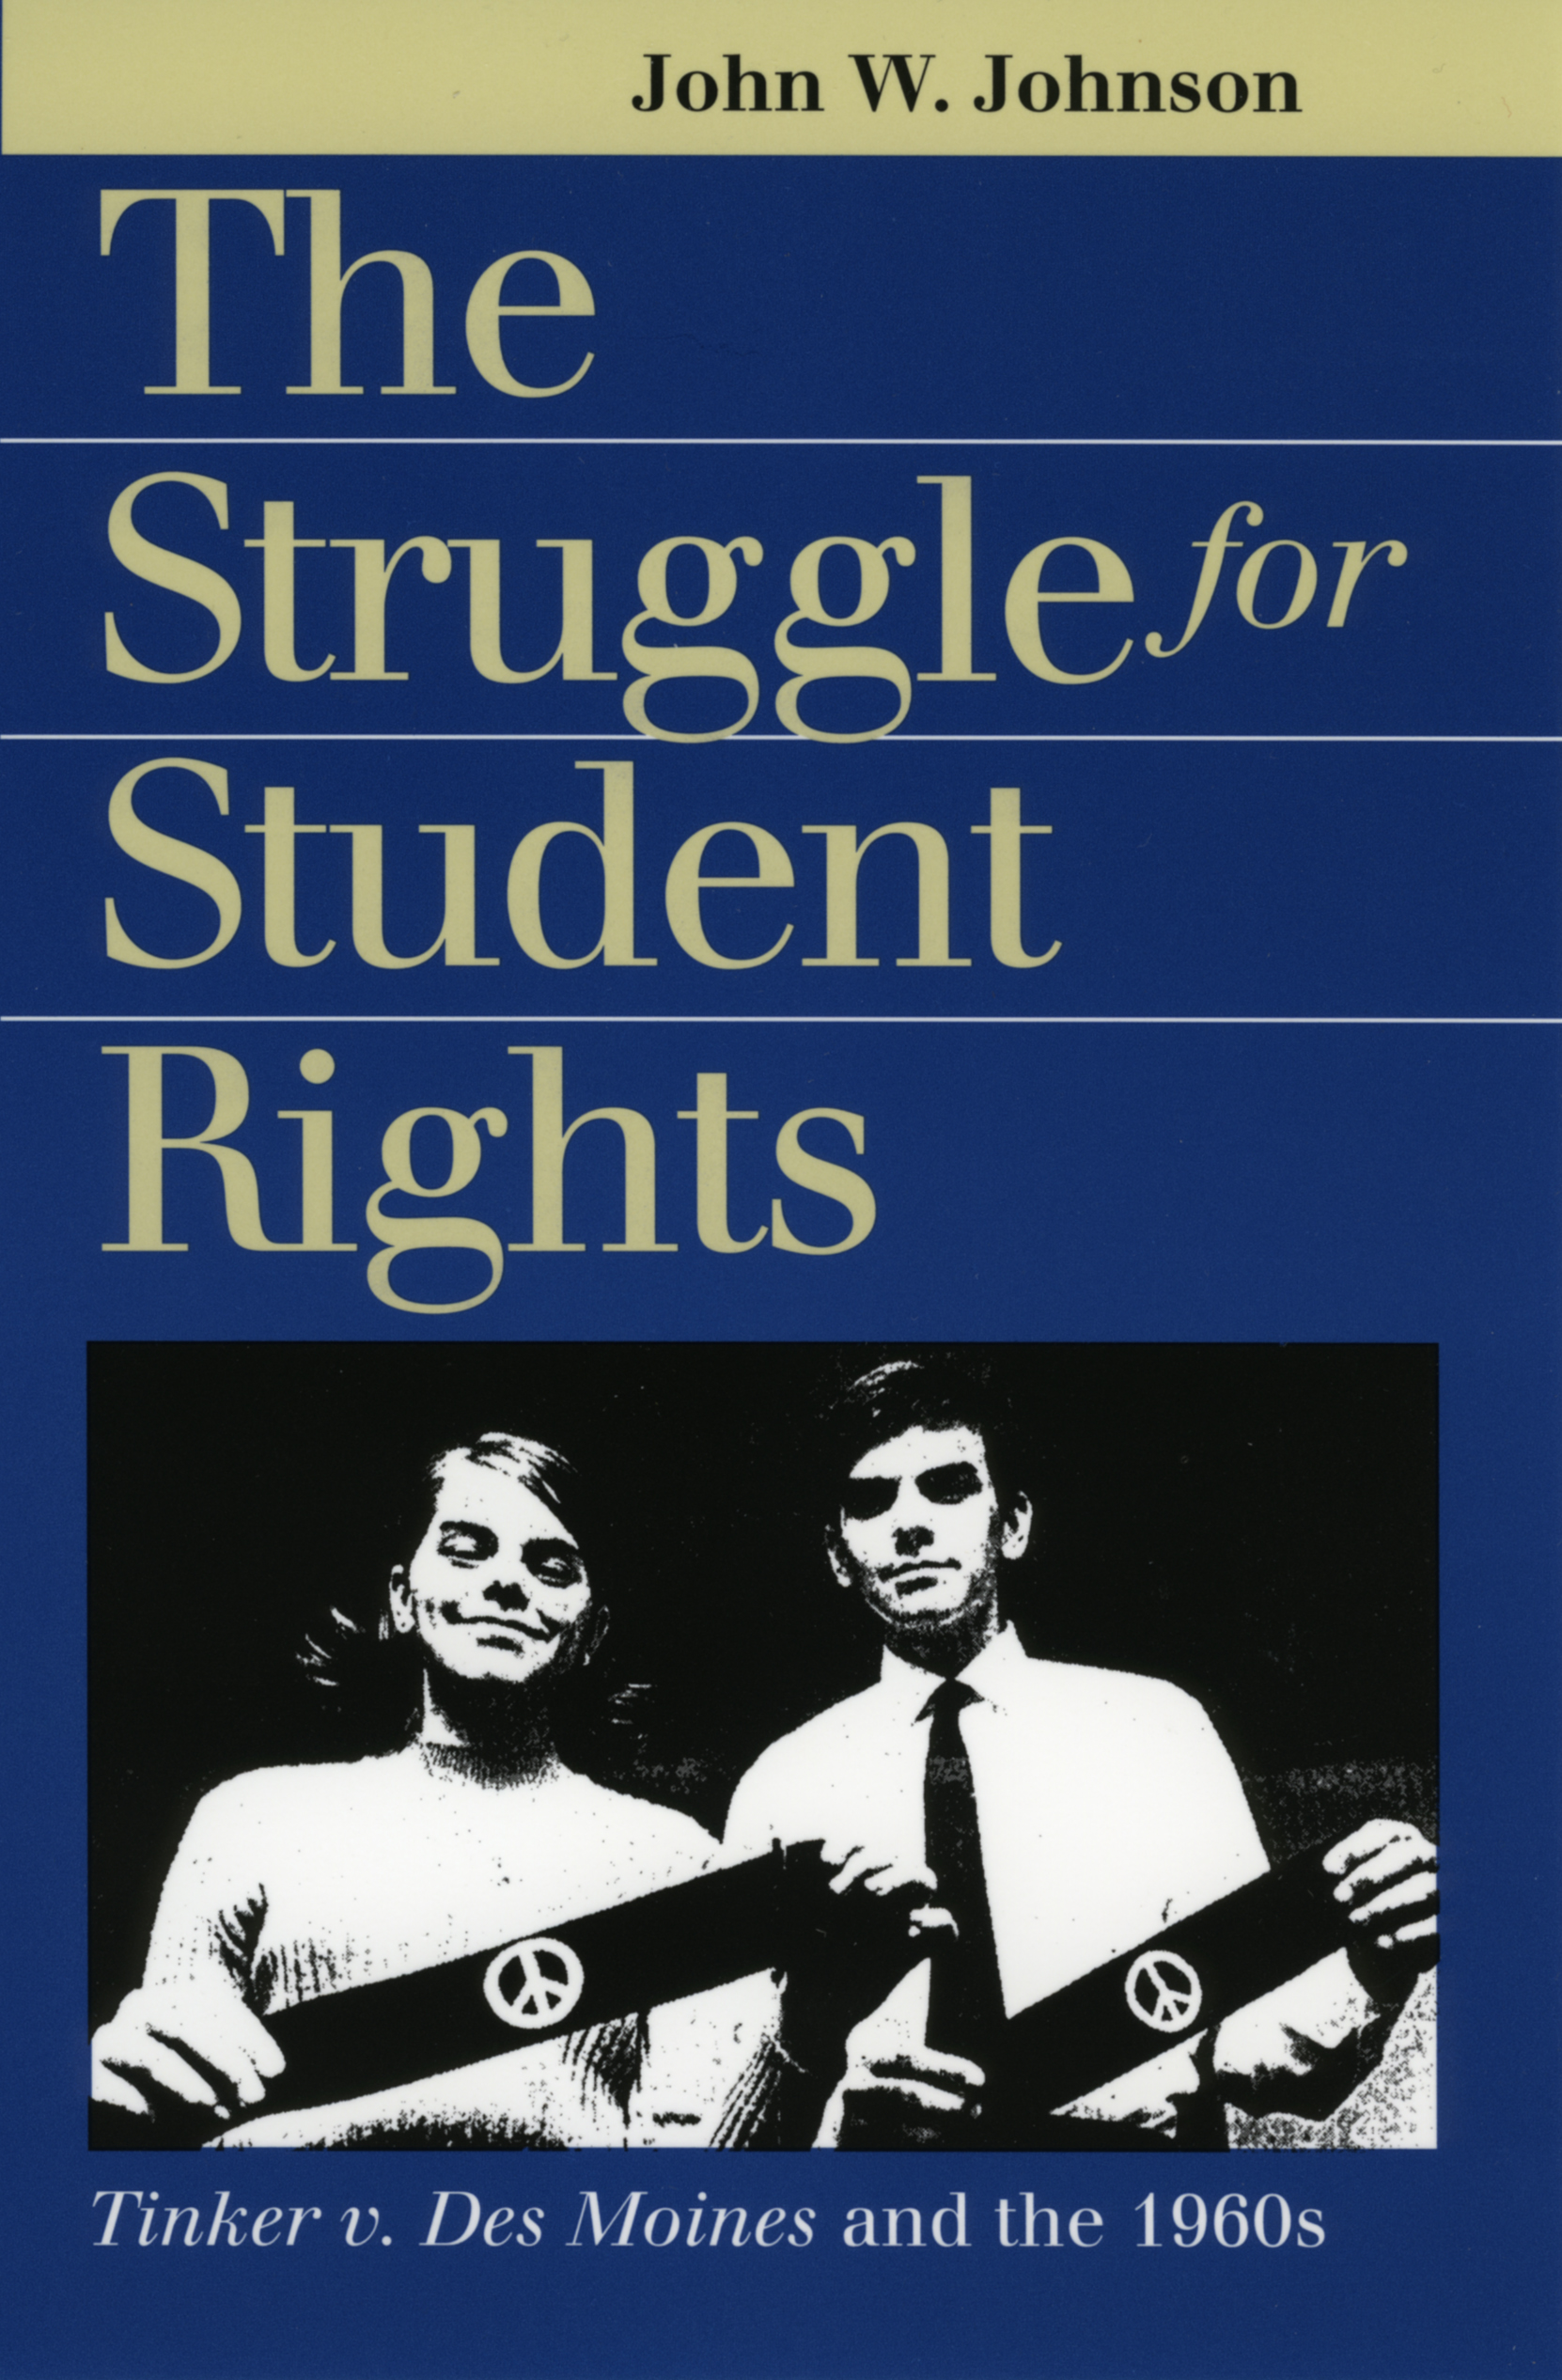 Johnson Struggle cover art